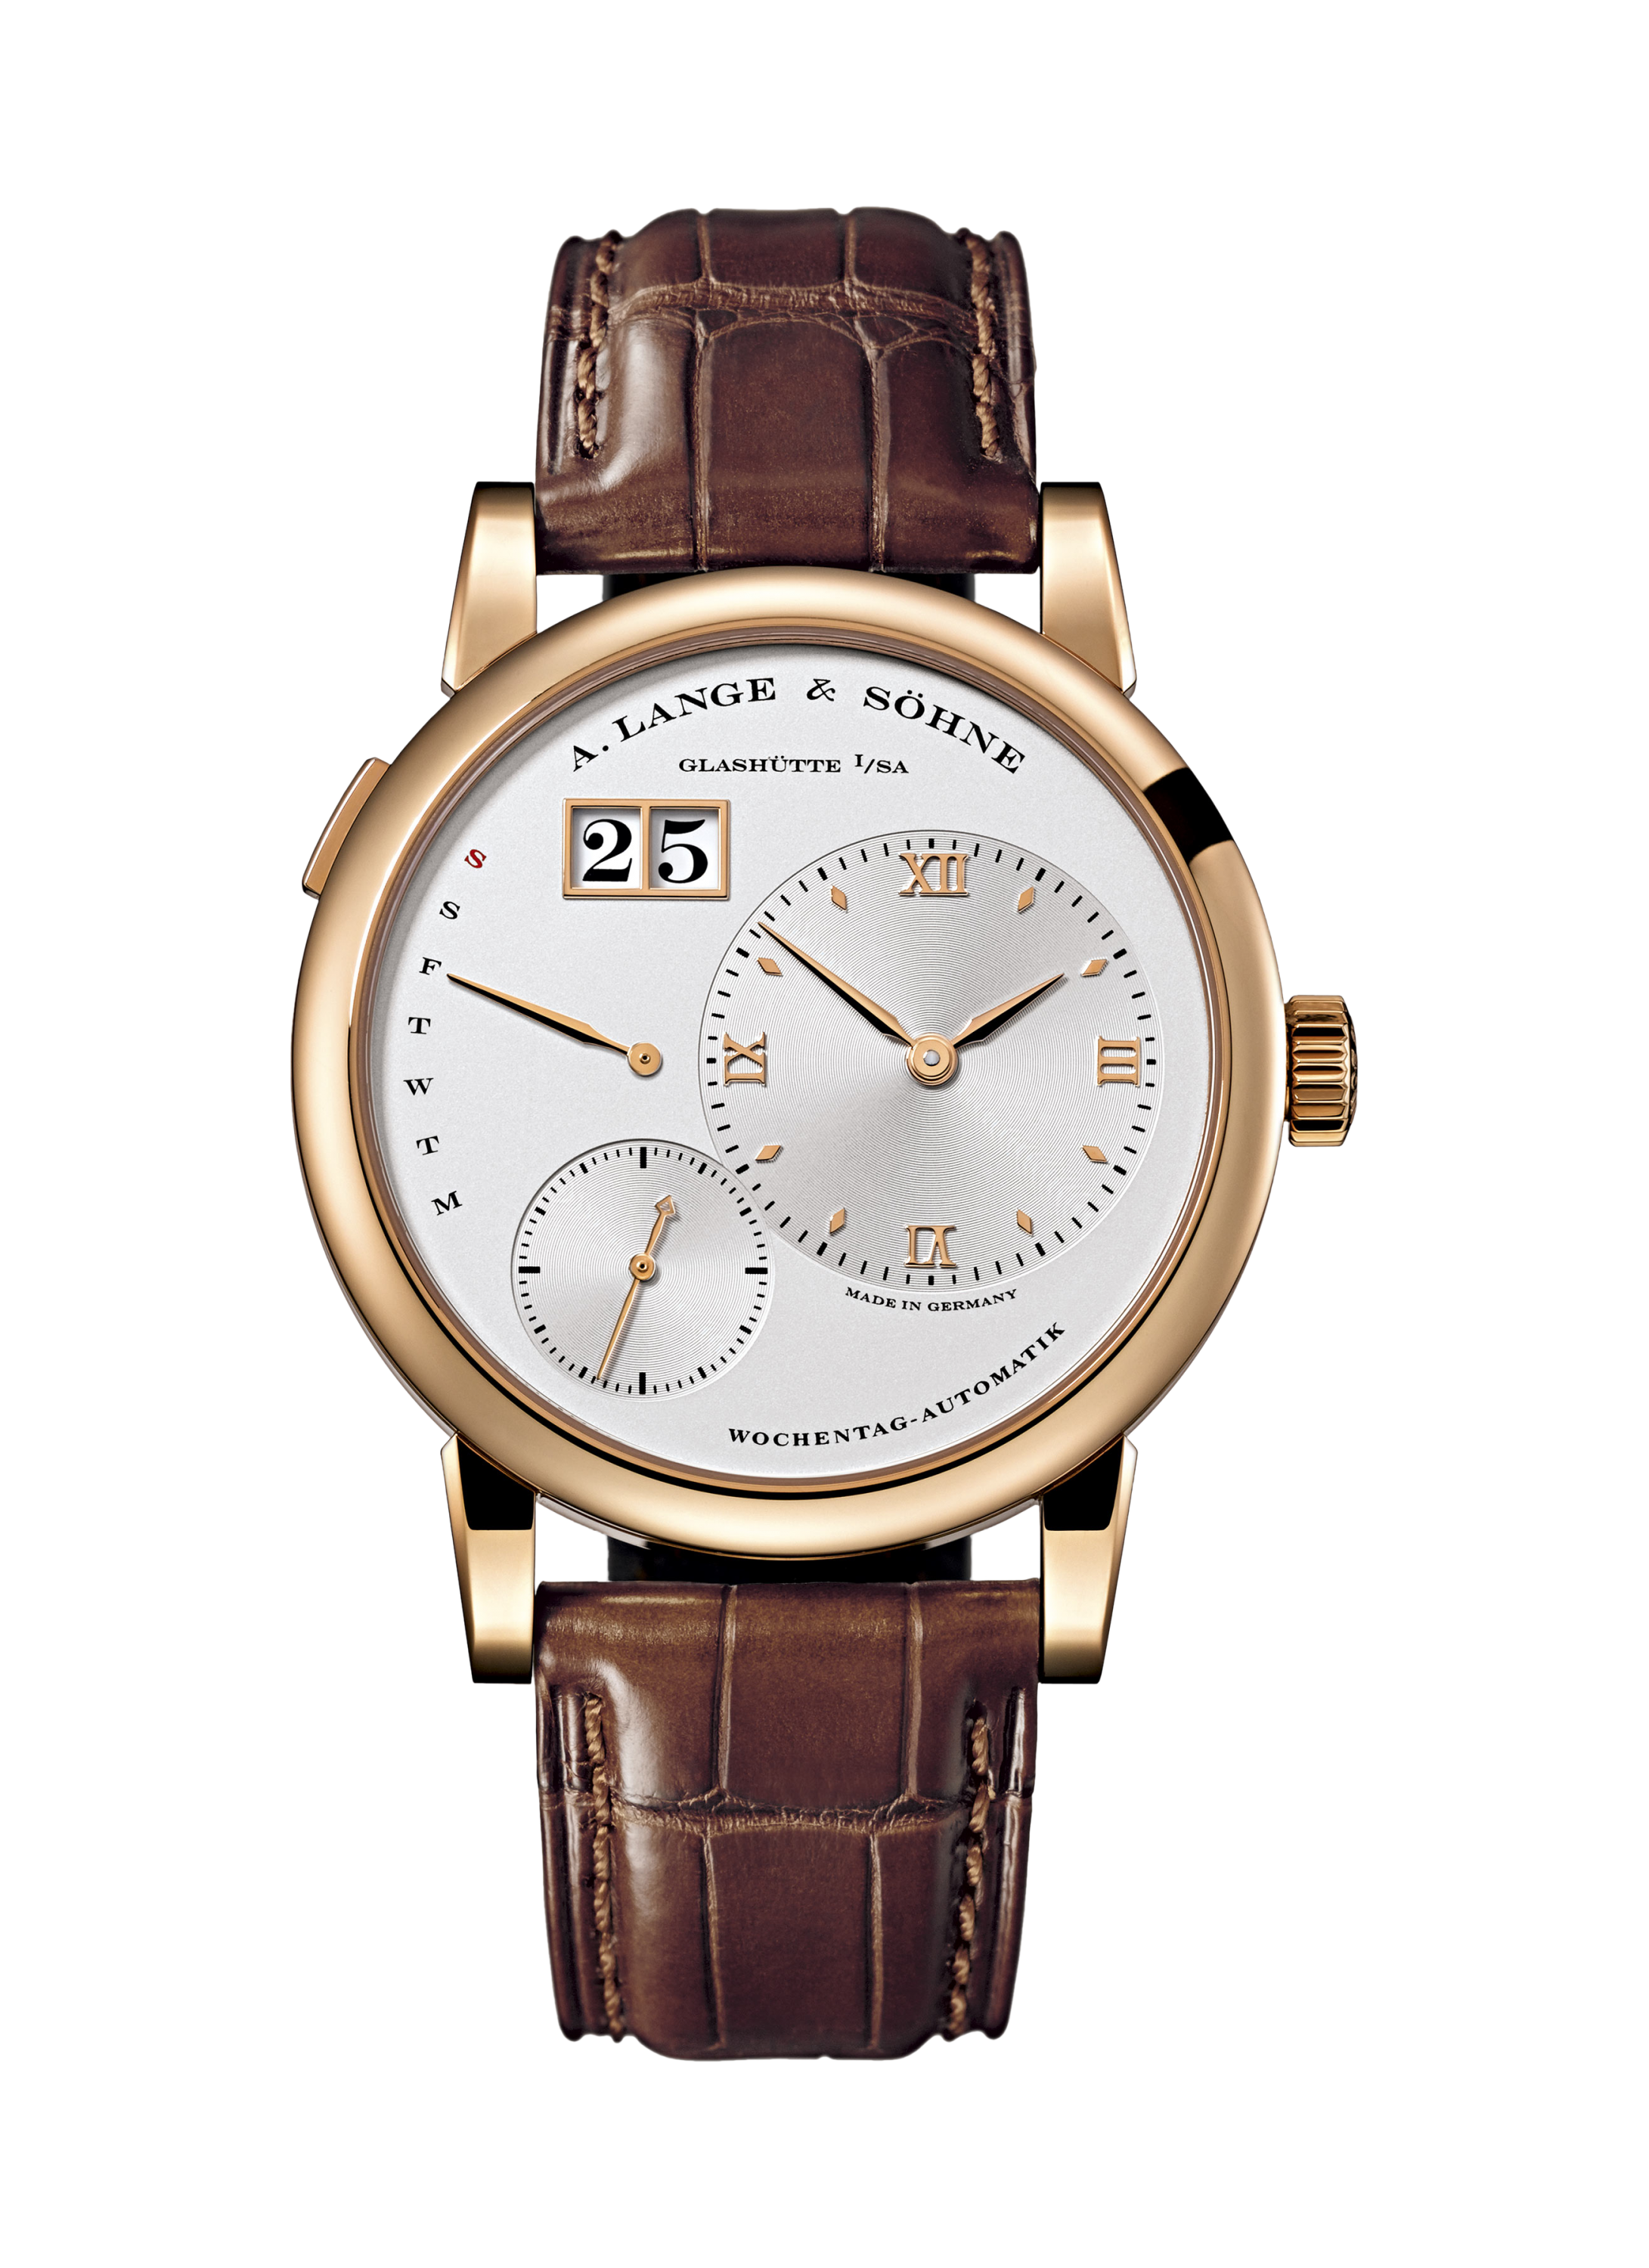 A.L&S Lange 1 Daymatic 320.032